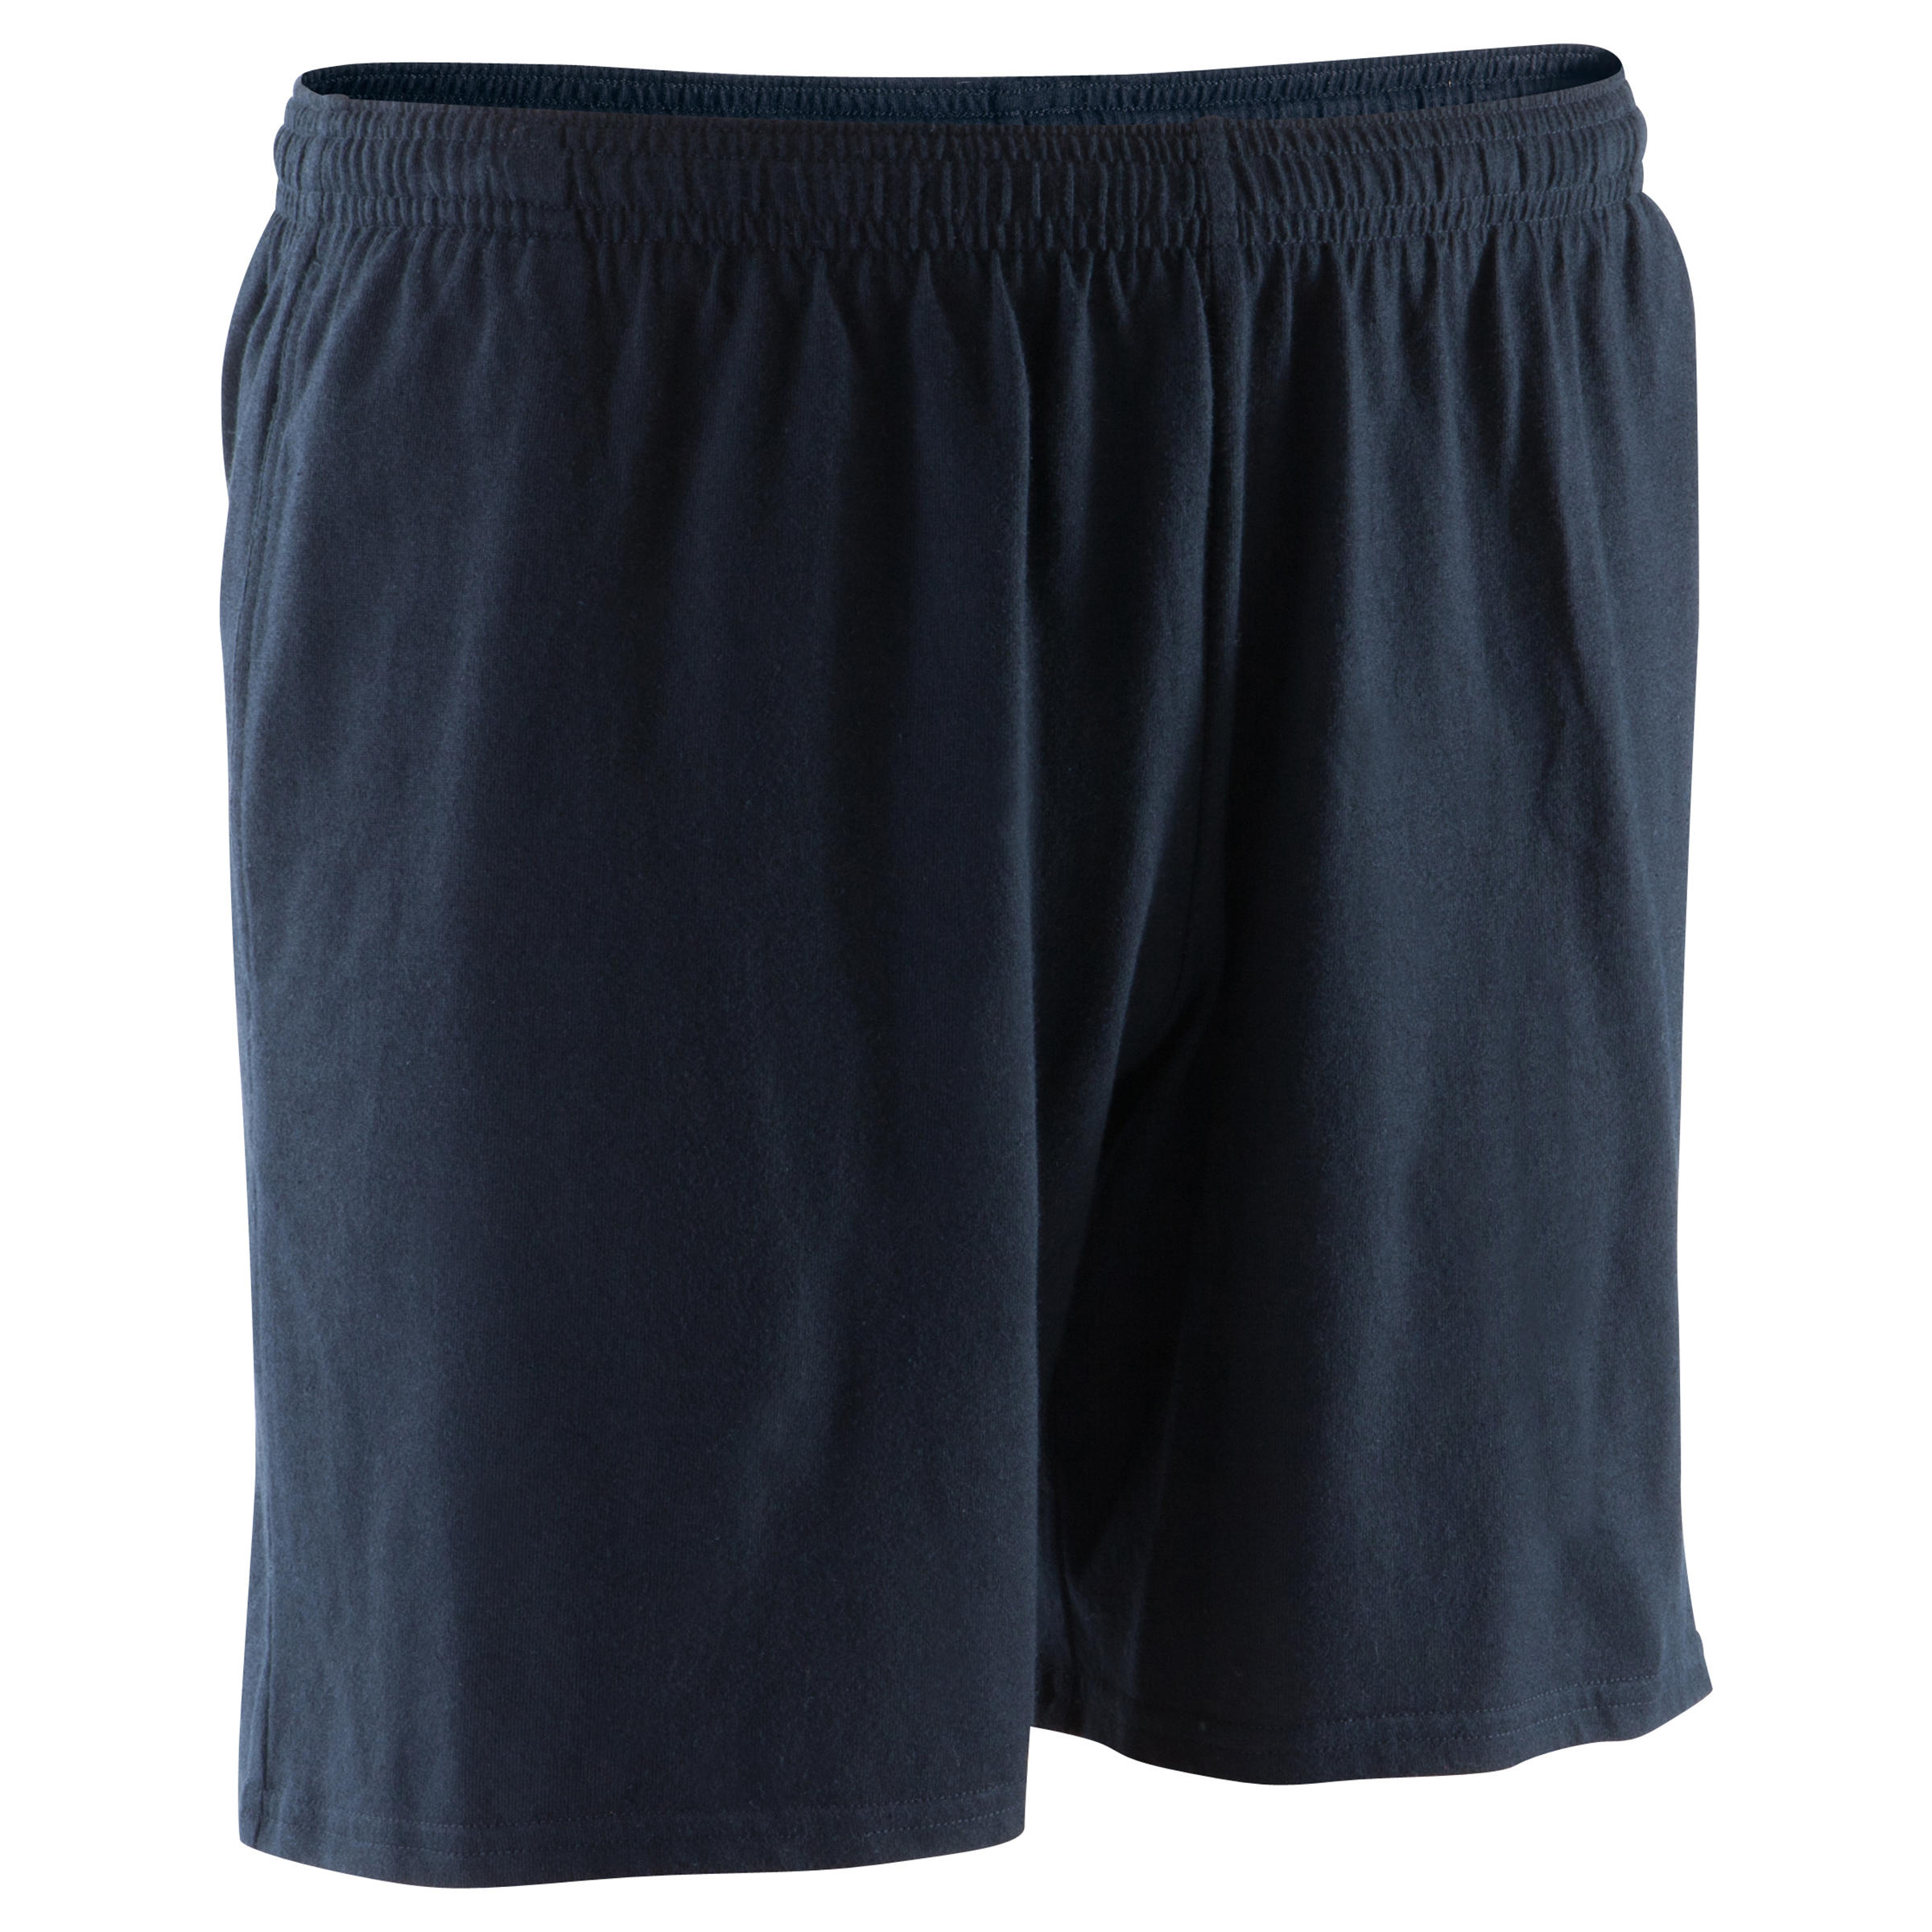 100 Mid-Thigh Gym Stretching Shorts - Black